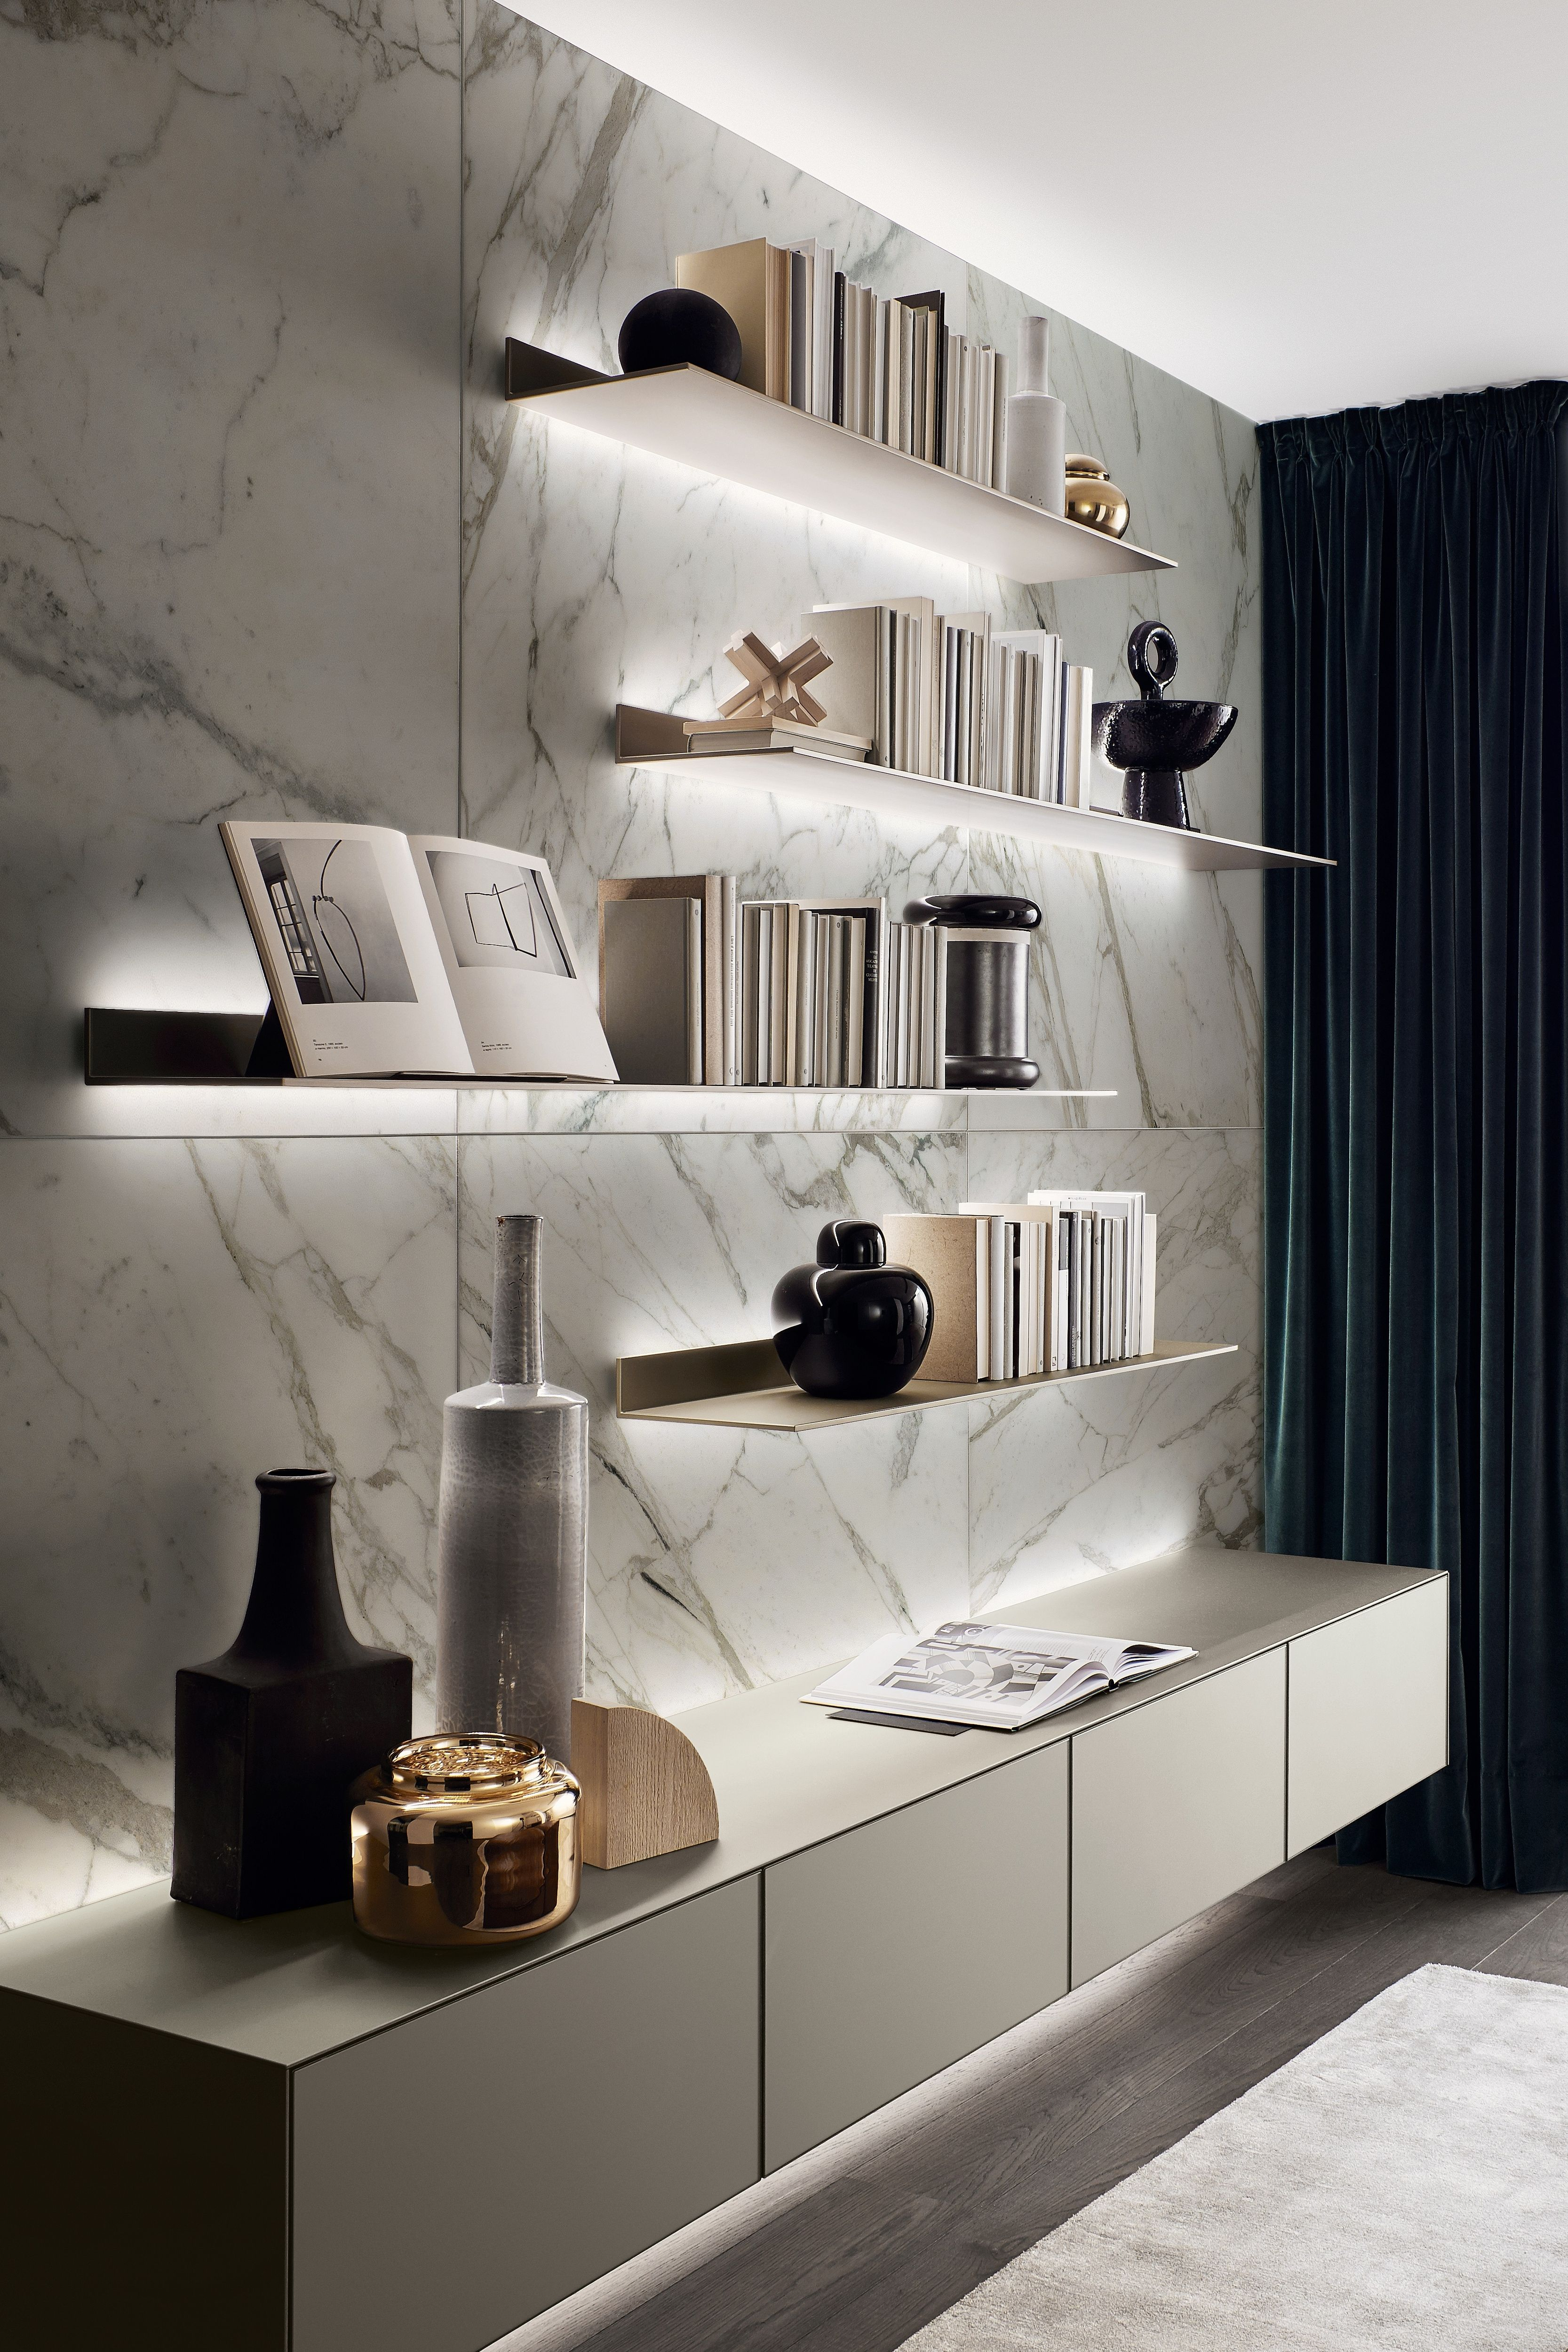 Concealed lighting behind the shelves and suspended cabinets, creates an illusion of weightlessness.  Please see link in bio to discover more. . . . . . #LuxuryInterior  #ContemporaryInteriors #floatingshelves #amazinginteriors #livingrooms #livingroominterior #dreaminterior  #modernlivingroom #luxurylivingroom #livingroomdesigns #luxurylivingrooms #londoninterior #christchurchdorset #sandbanks #londondesign